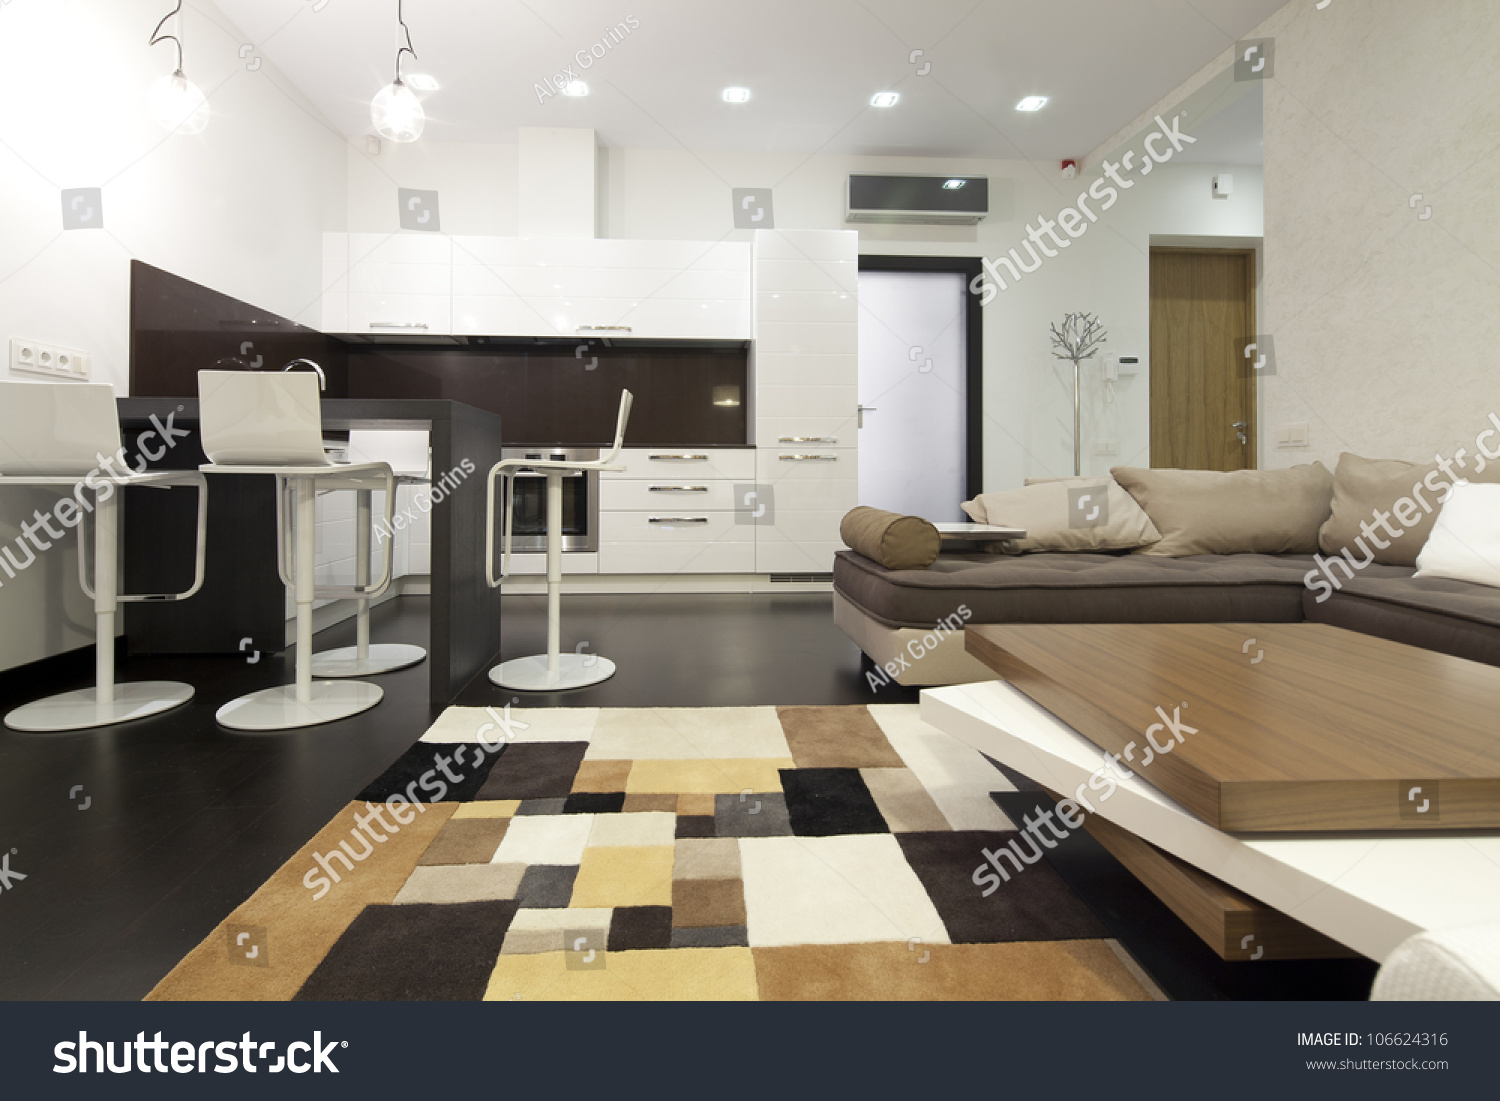 Interior Designer Living Room With Kitchen Stock Photo 106624316